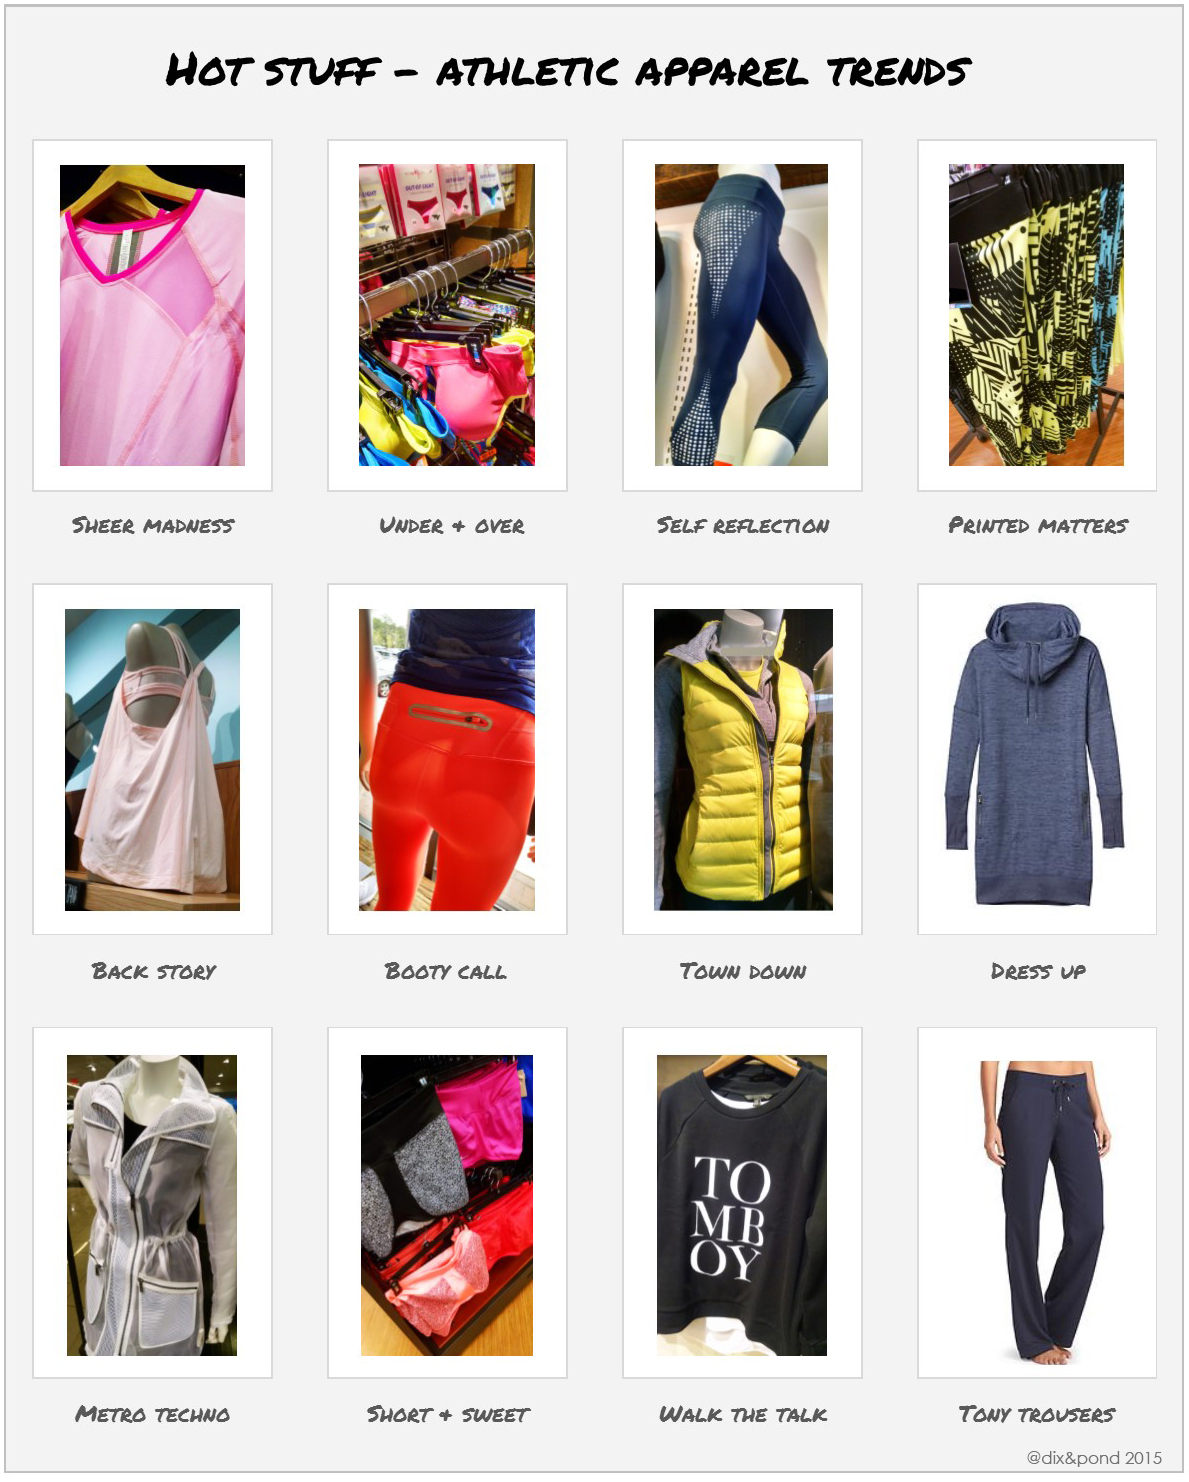 Dix & Pond Athletic Apparel Trends